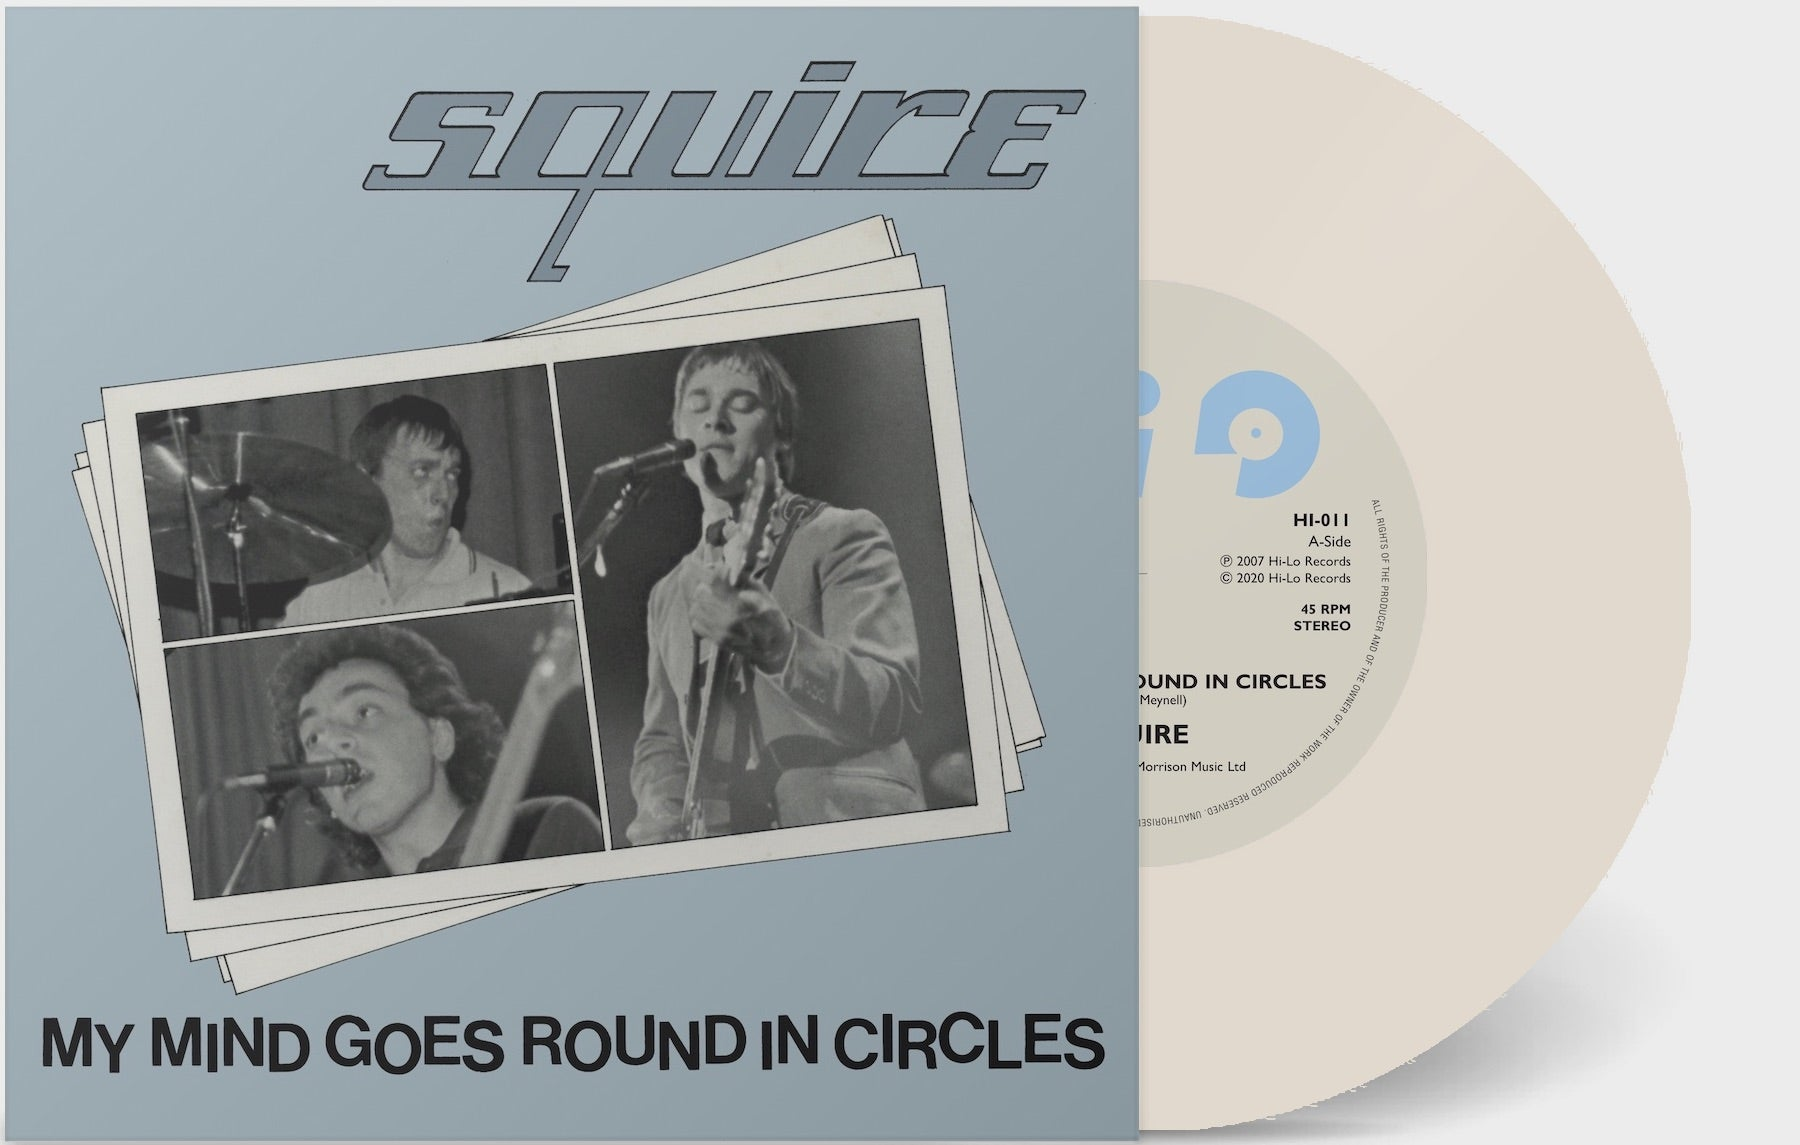 Squire - My Mind Goes Round In Circles  - Vinyl 7 inch MILKY CLEAR